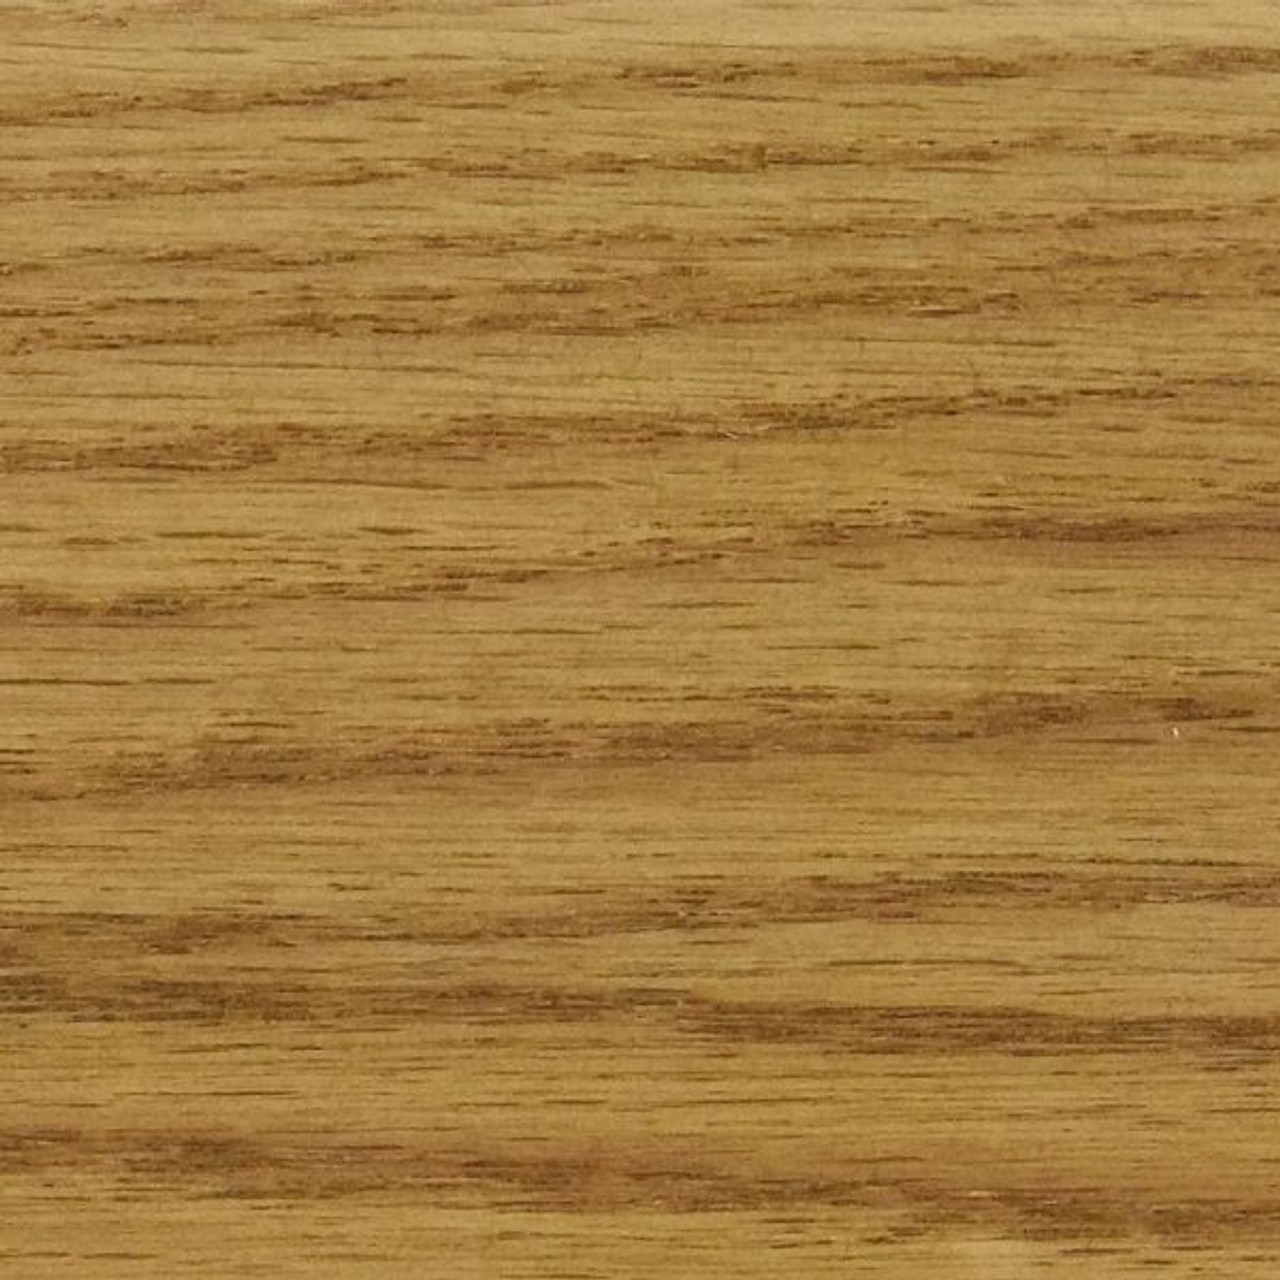 Saman Cappuccino stain on wood.